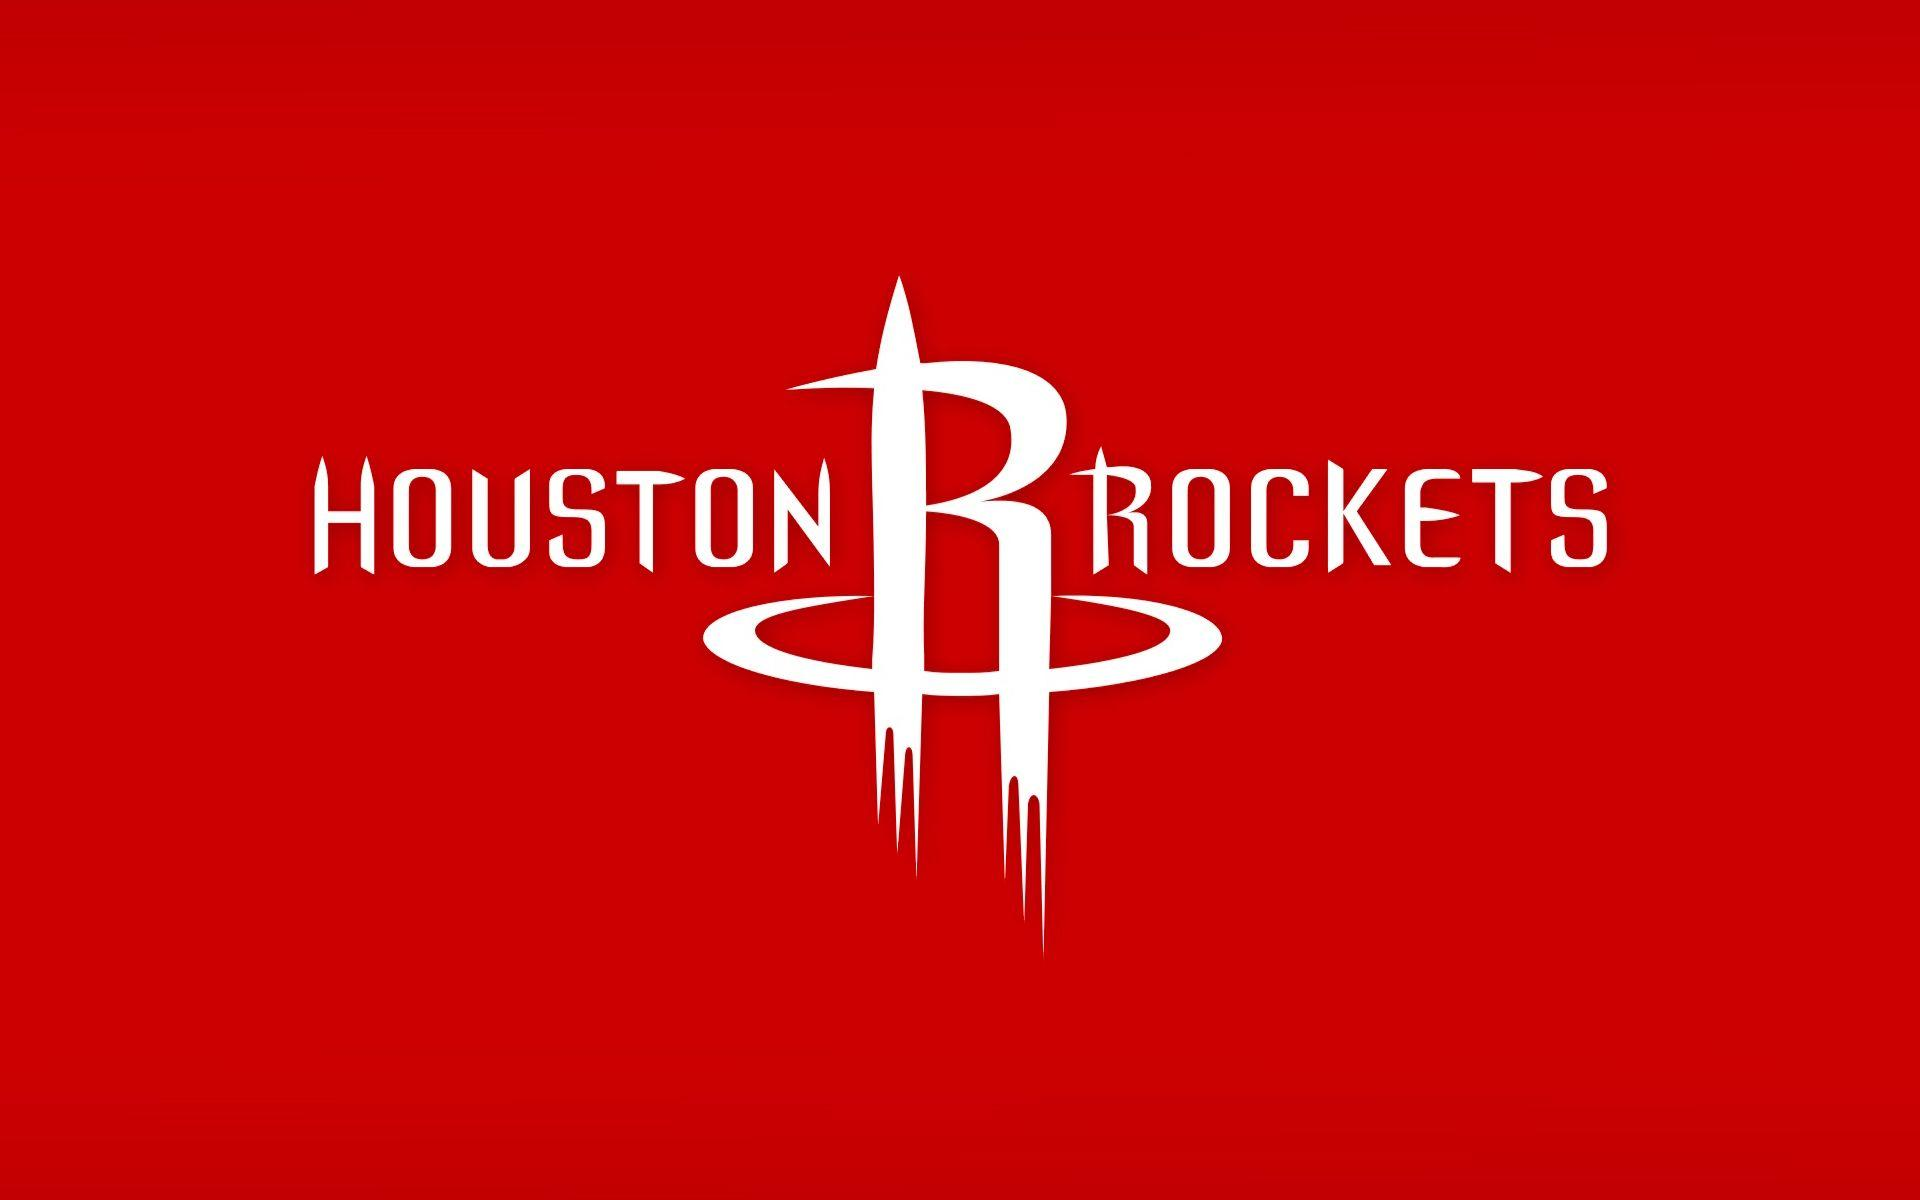 Houston Rockets image